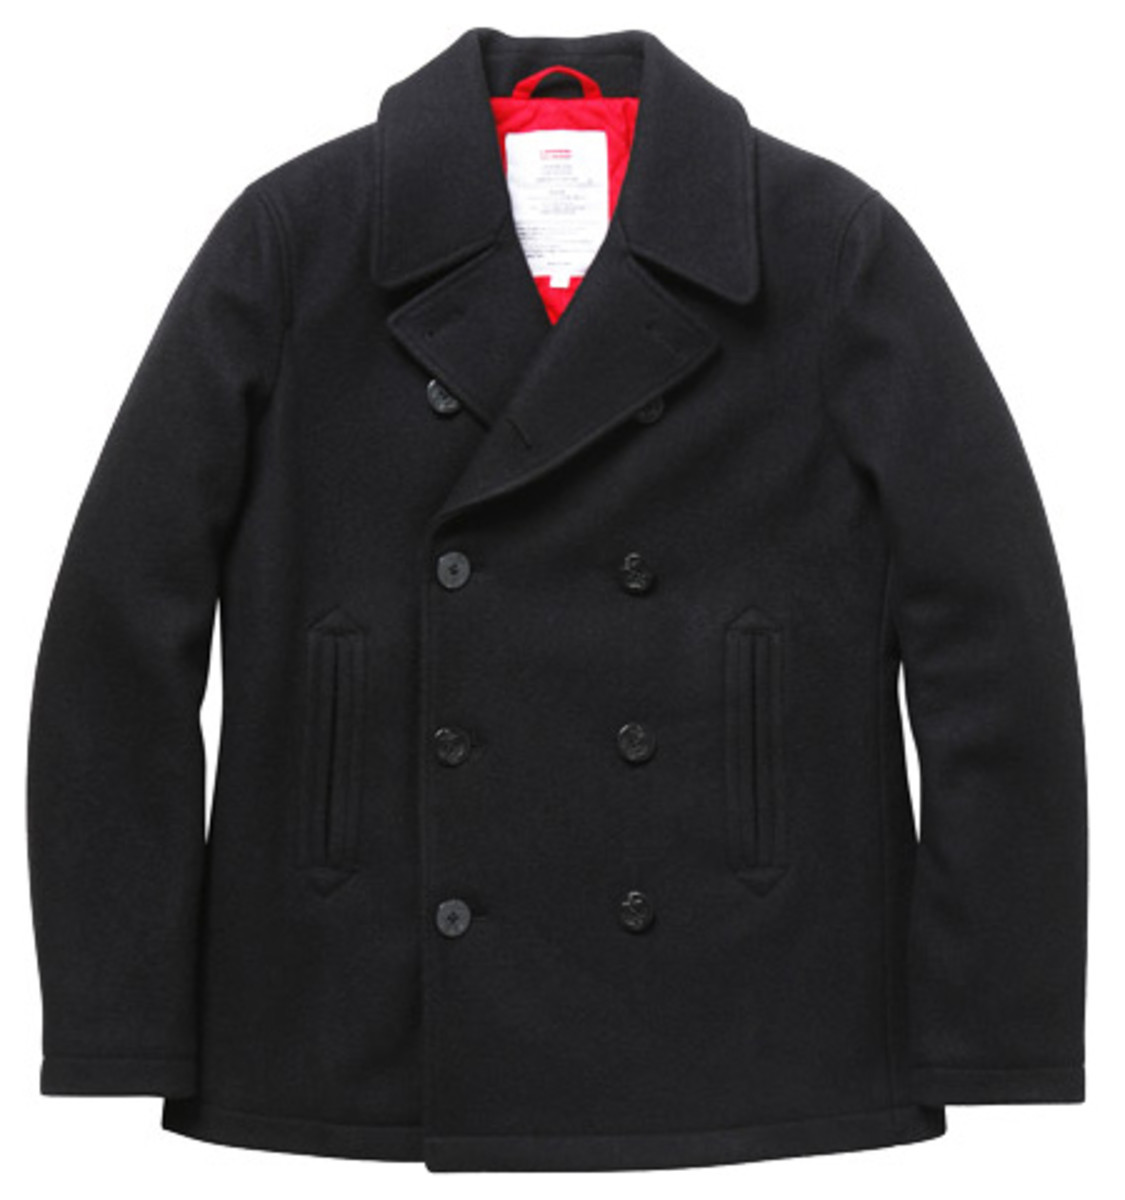 Supreme - Fall/Winter 2009 Collection - Wool Pea Coat (Black)